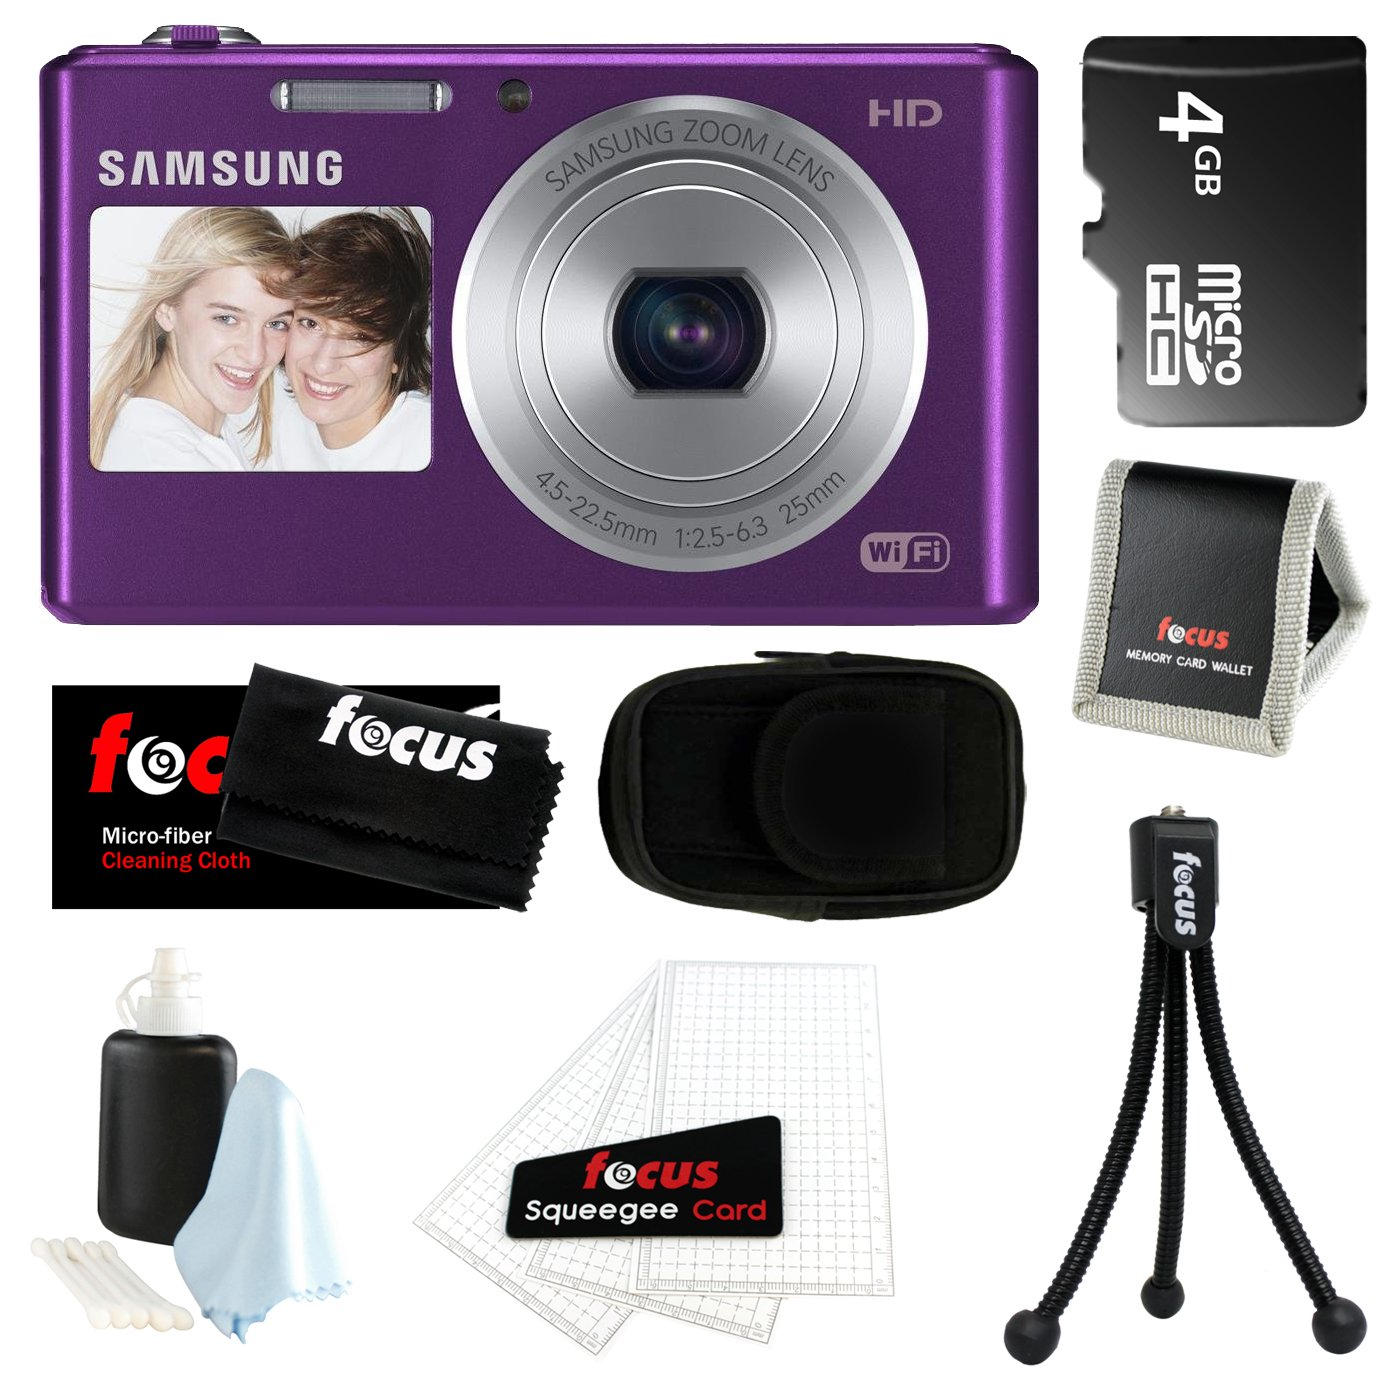 Samsung DV150F 16.2MP Dual-View Smart Camera w/ Built-in Wi-Fi in Cobalt Plum Lavander + 4GB MicroSD HC Memory Card + Camera Cas at Sears.com